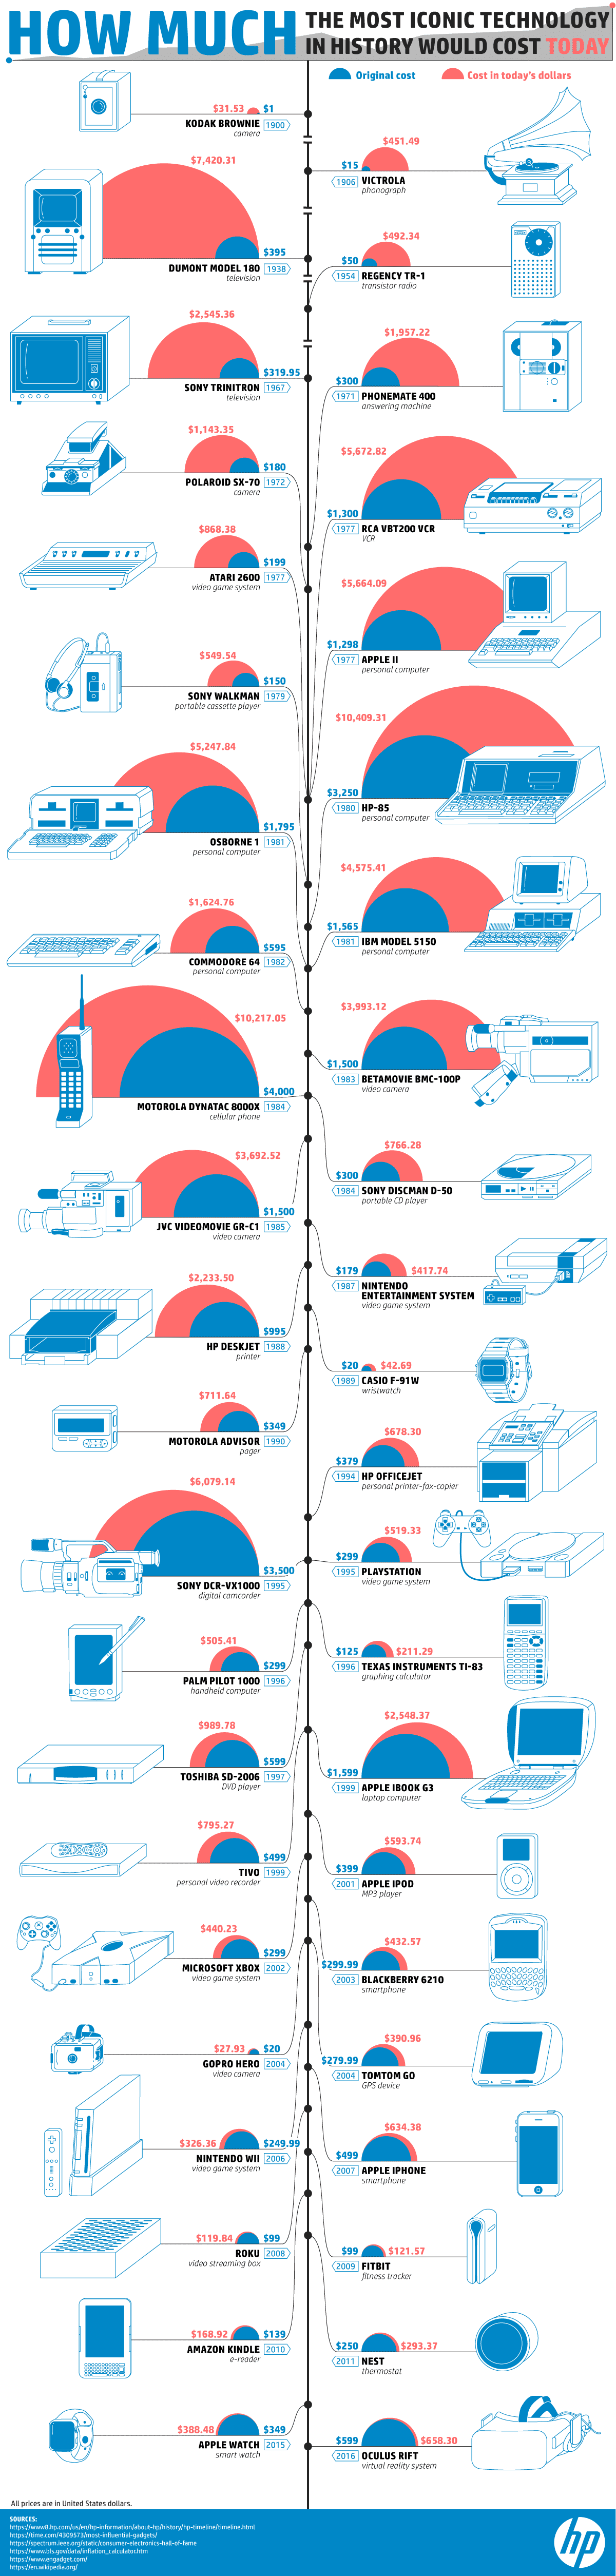 How Much the Most Iconic Technology in History Would Cost Today